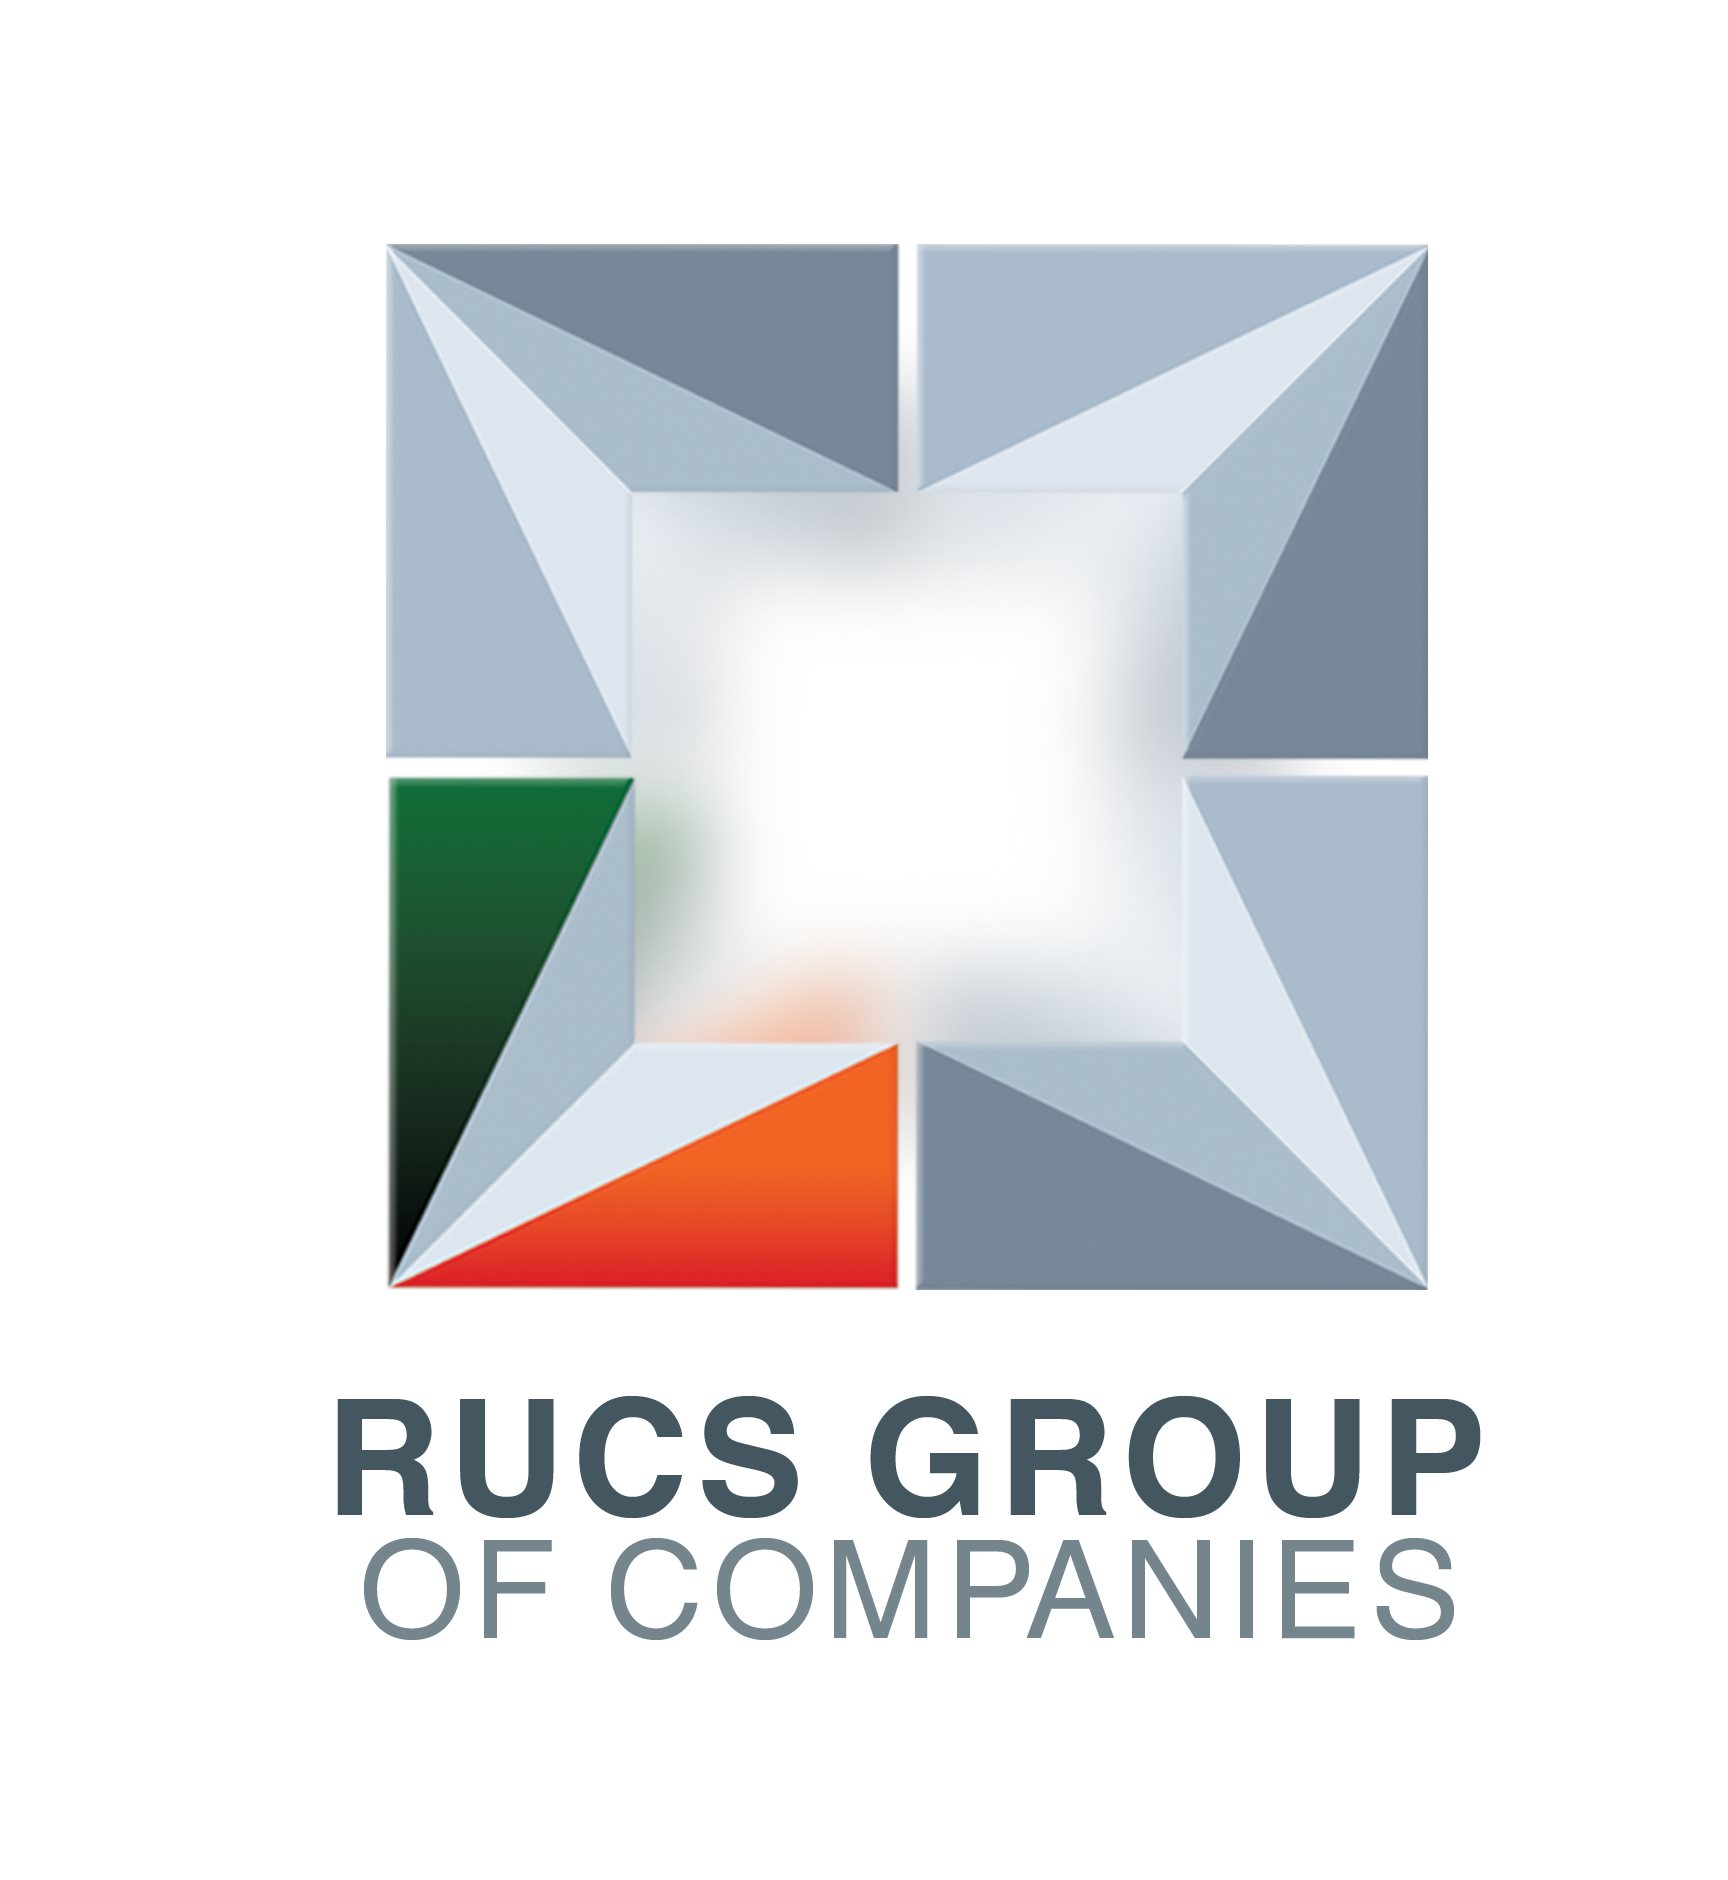 RUCS GROUP OF COMPANIES